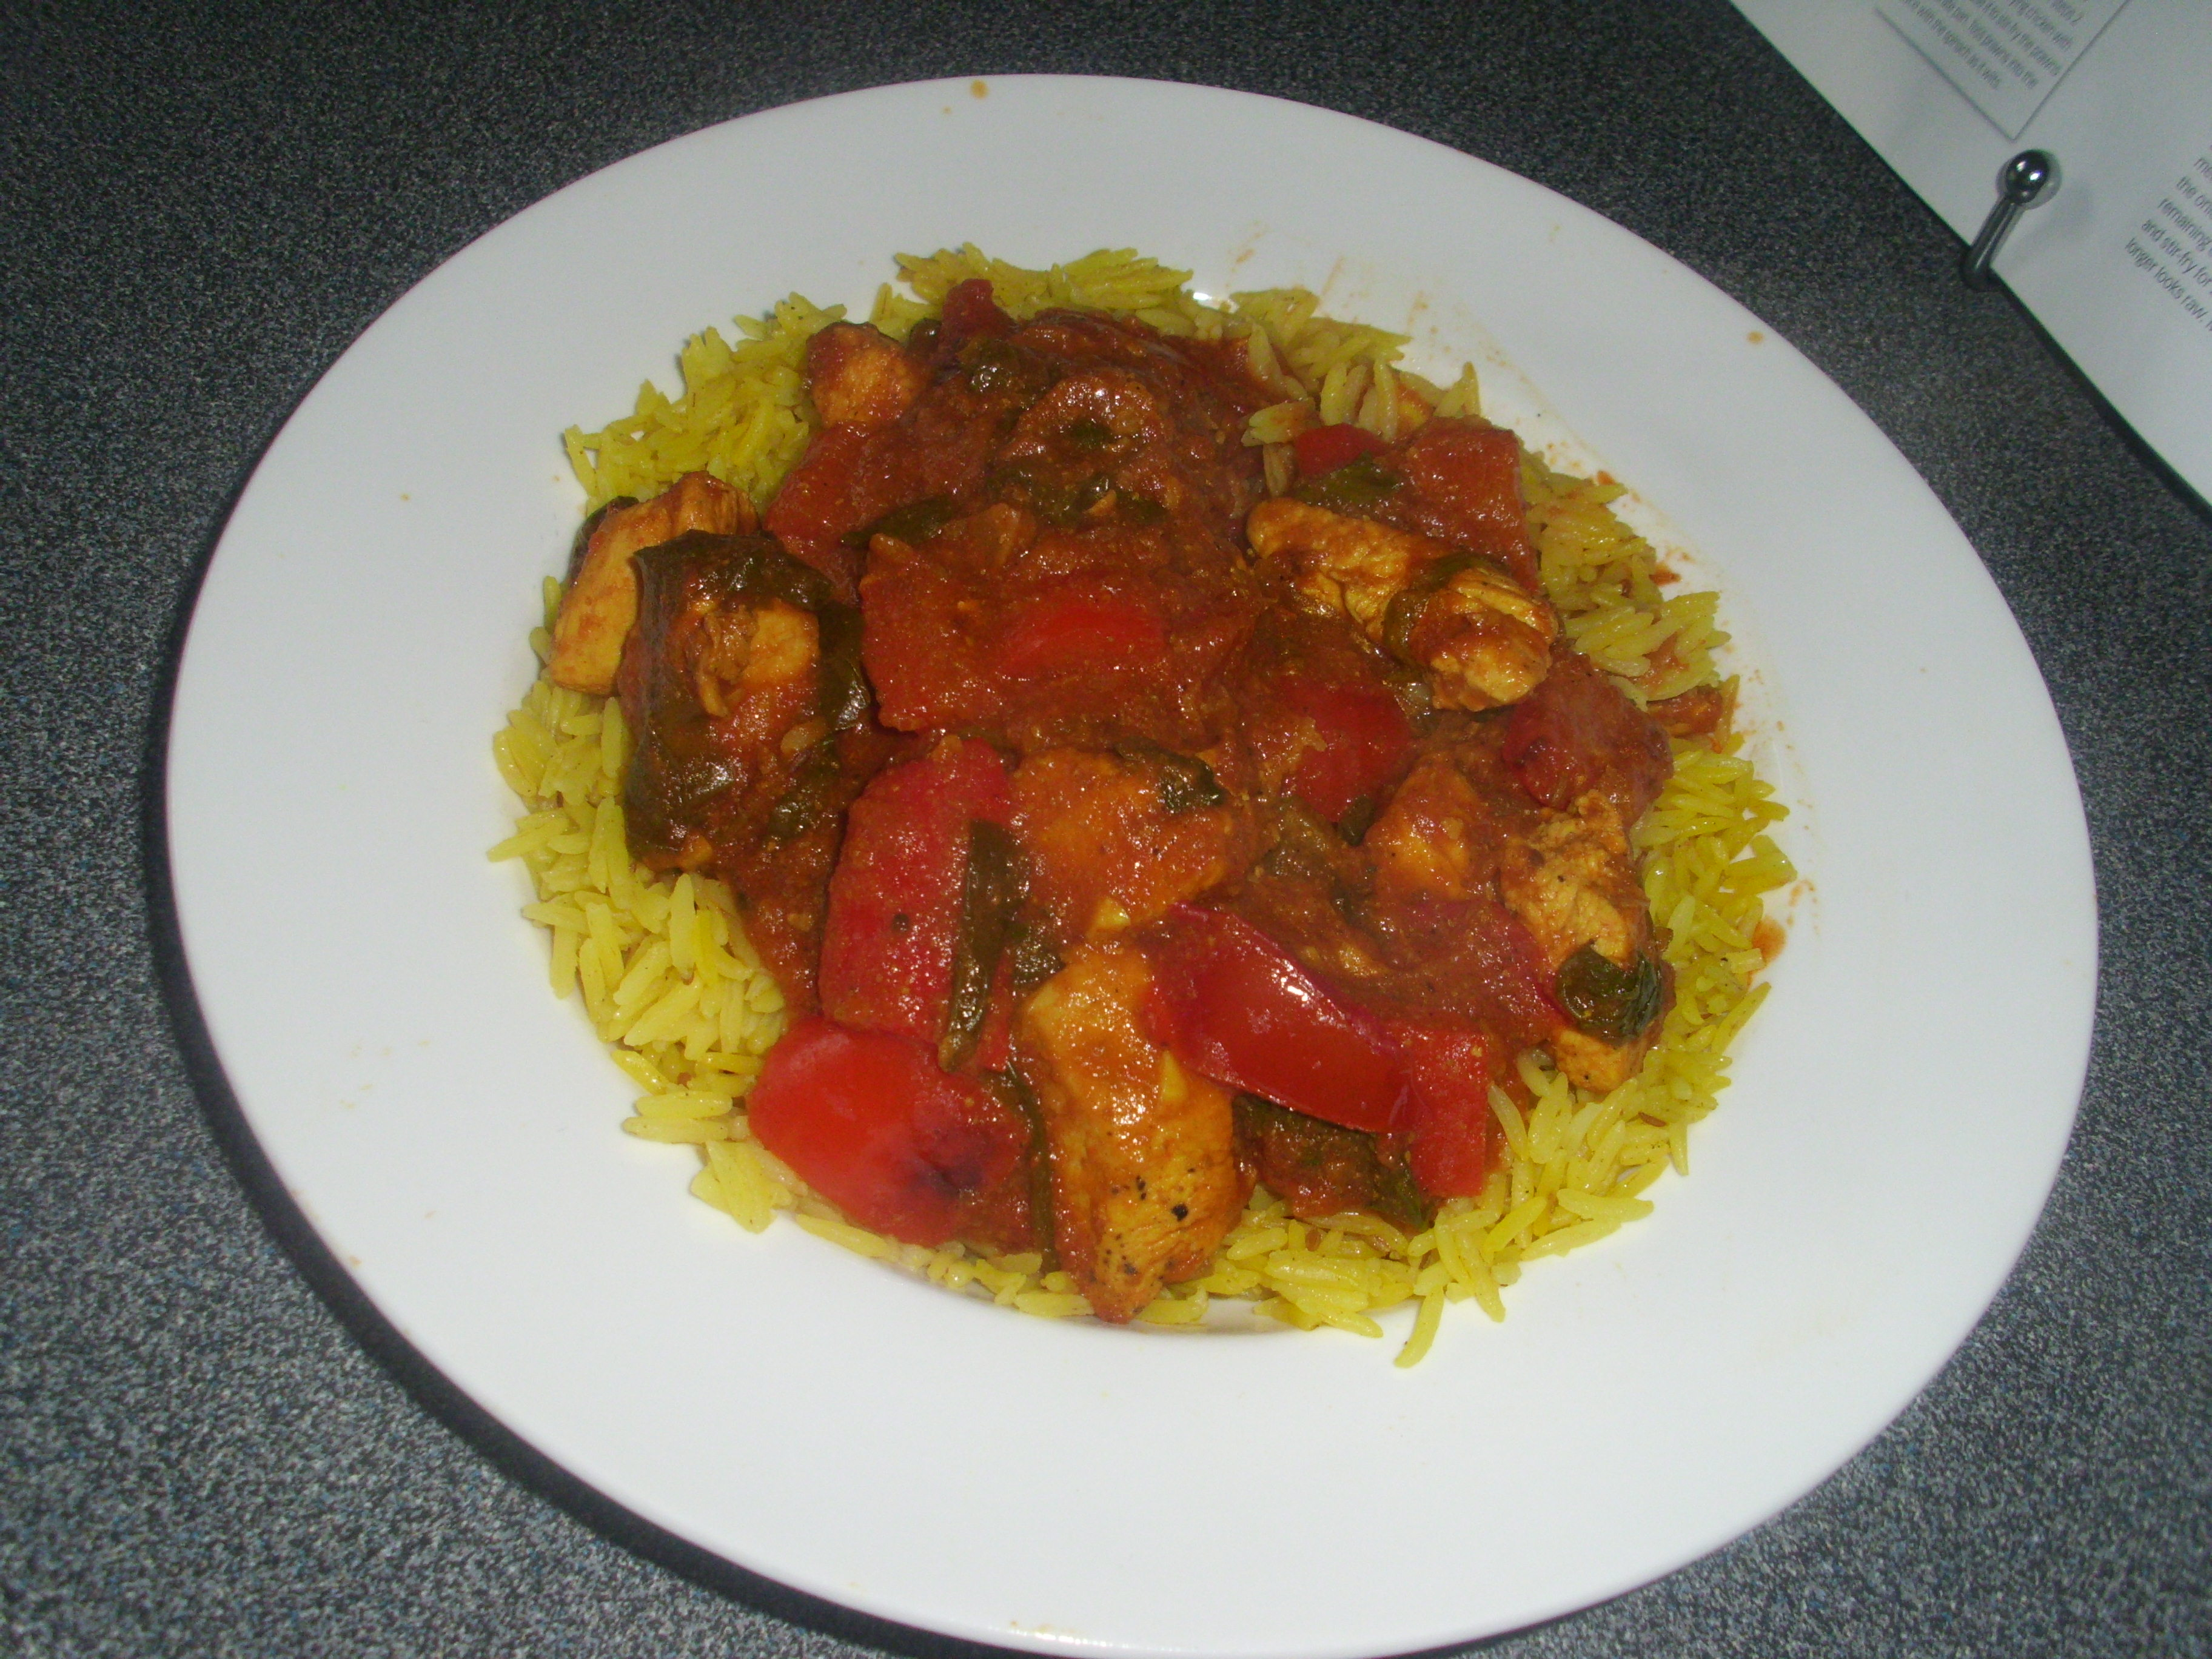 Chicken balti a low fat version for the health conscious tasty this chicken balti dish is just the opposite i got the recipe from one of my good food forumfinder Gallery